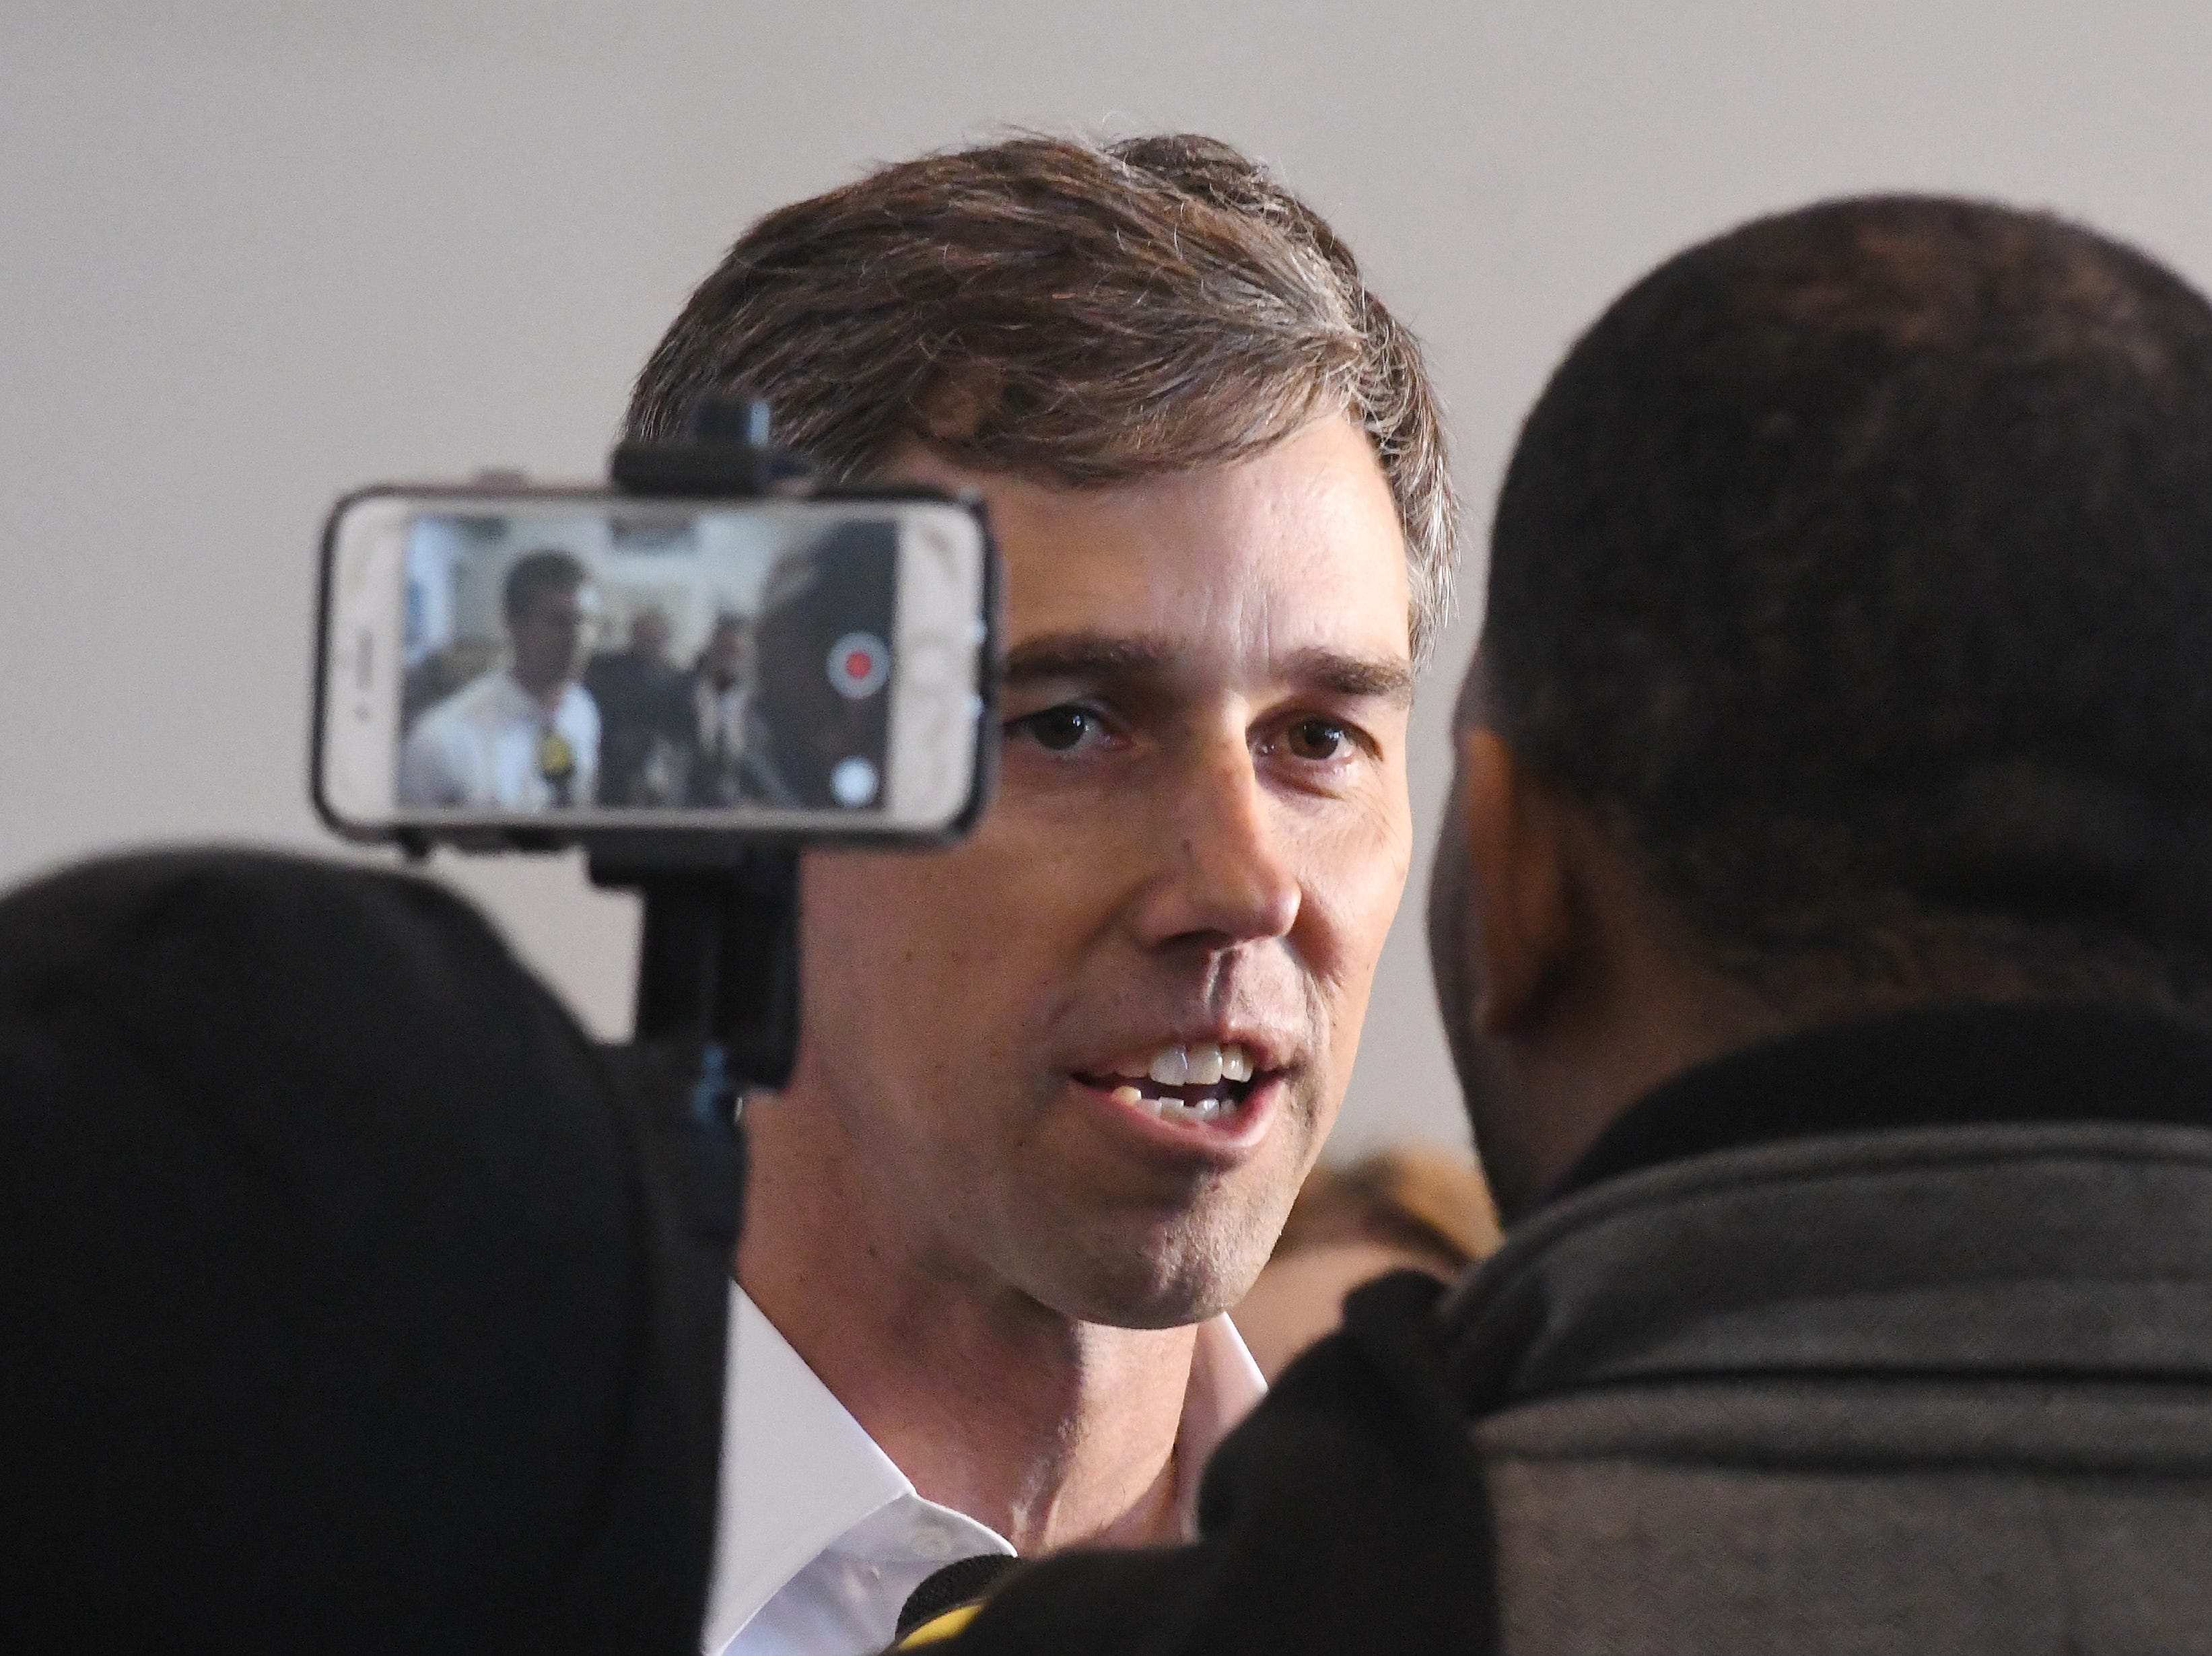 Democratic U.S. presidential candidate Beto O'Rourke answers questions form media after a visit to the Detroit Carpenters Training Center.